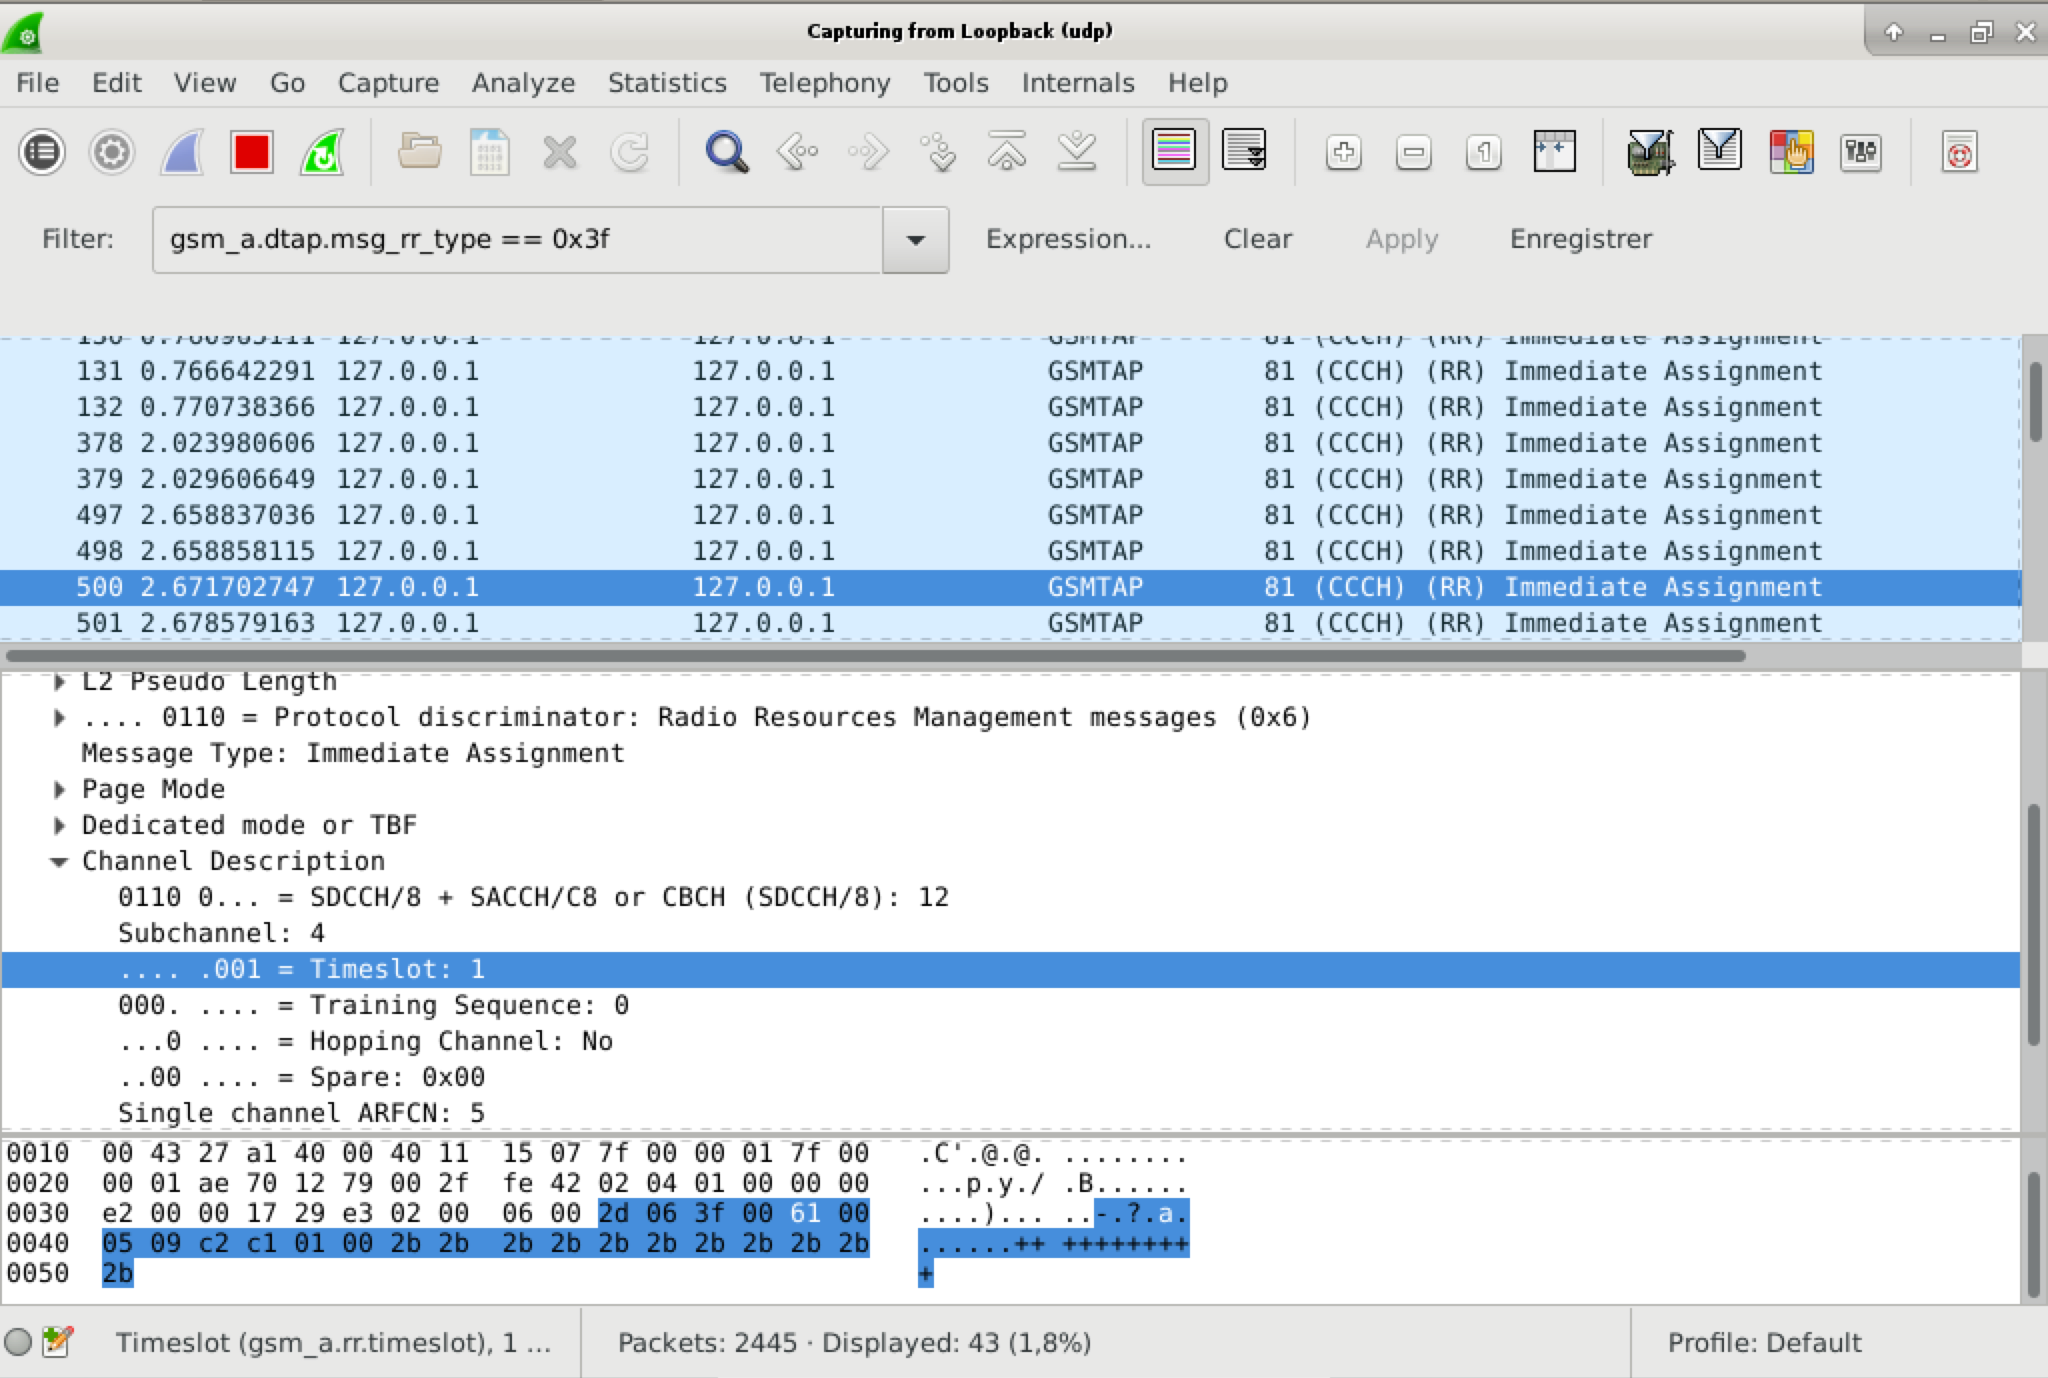 capture d'écran wireshark montrant un Immediate Assignement